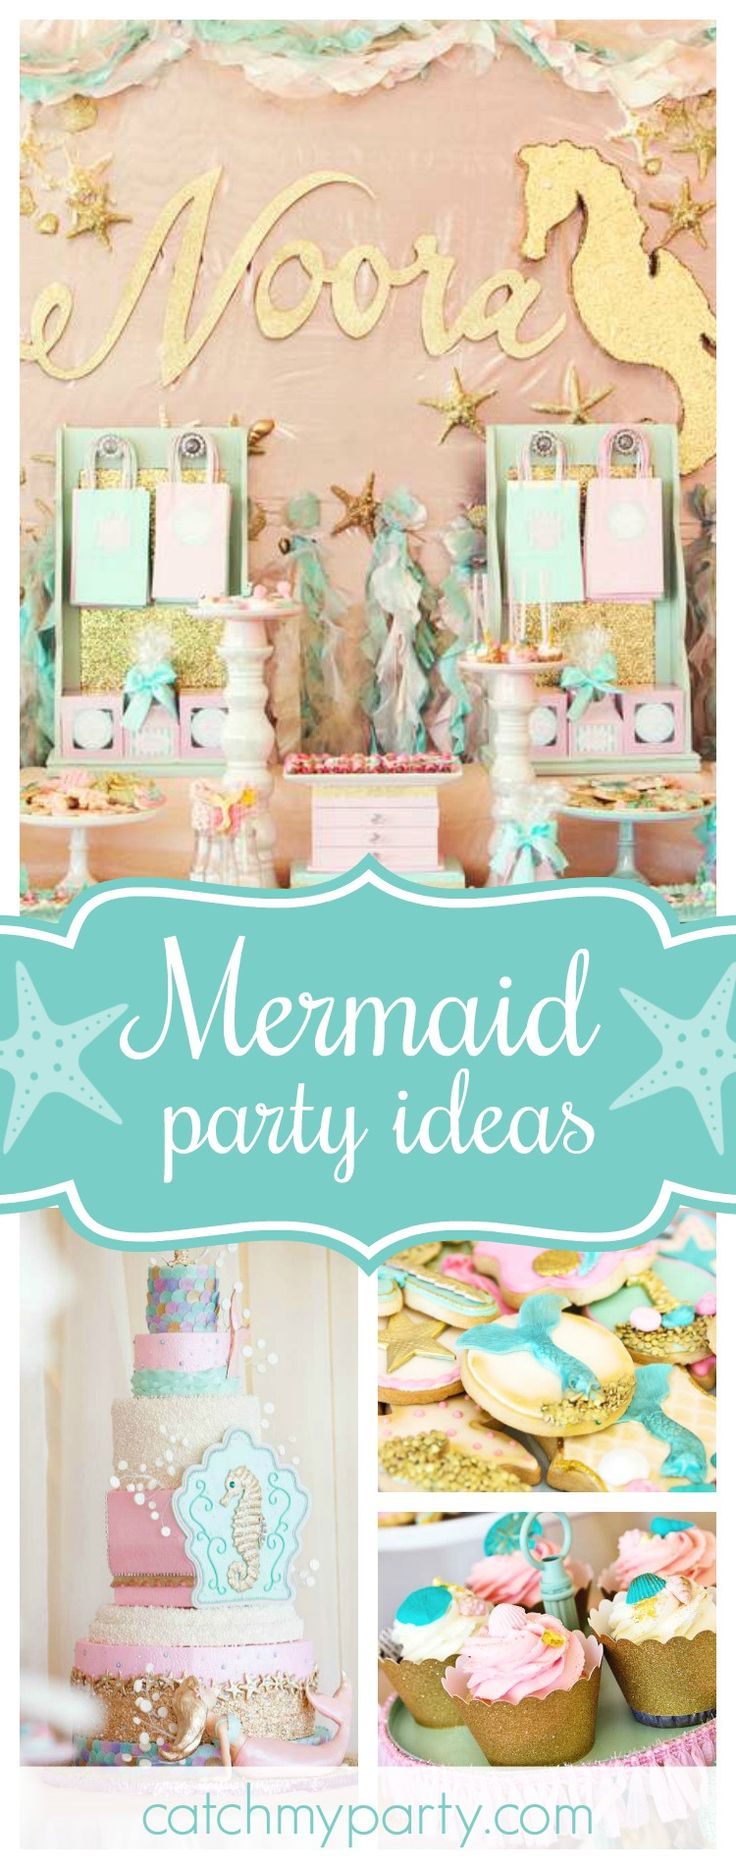 Don't miss this incredible Under the Sea Mermaid Soiree!! The dessert table is gorgeous!! See more party ideas and share yours at CatchMyParty.com